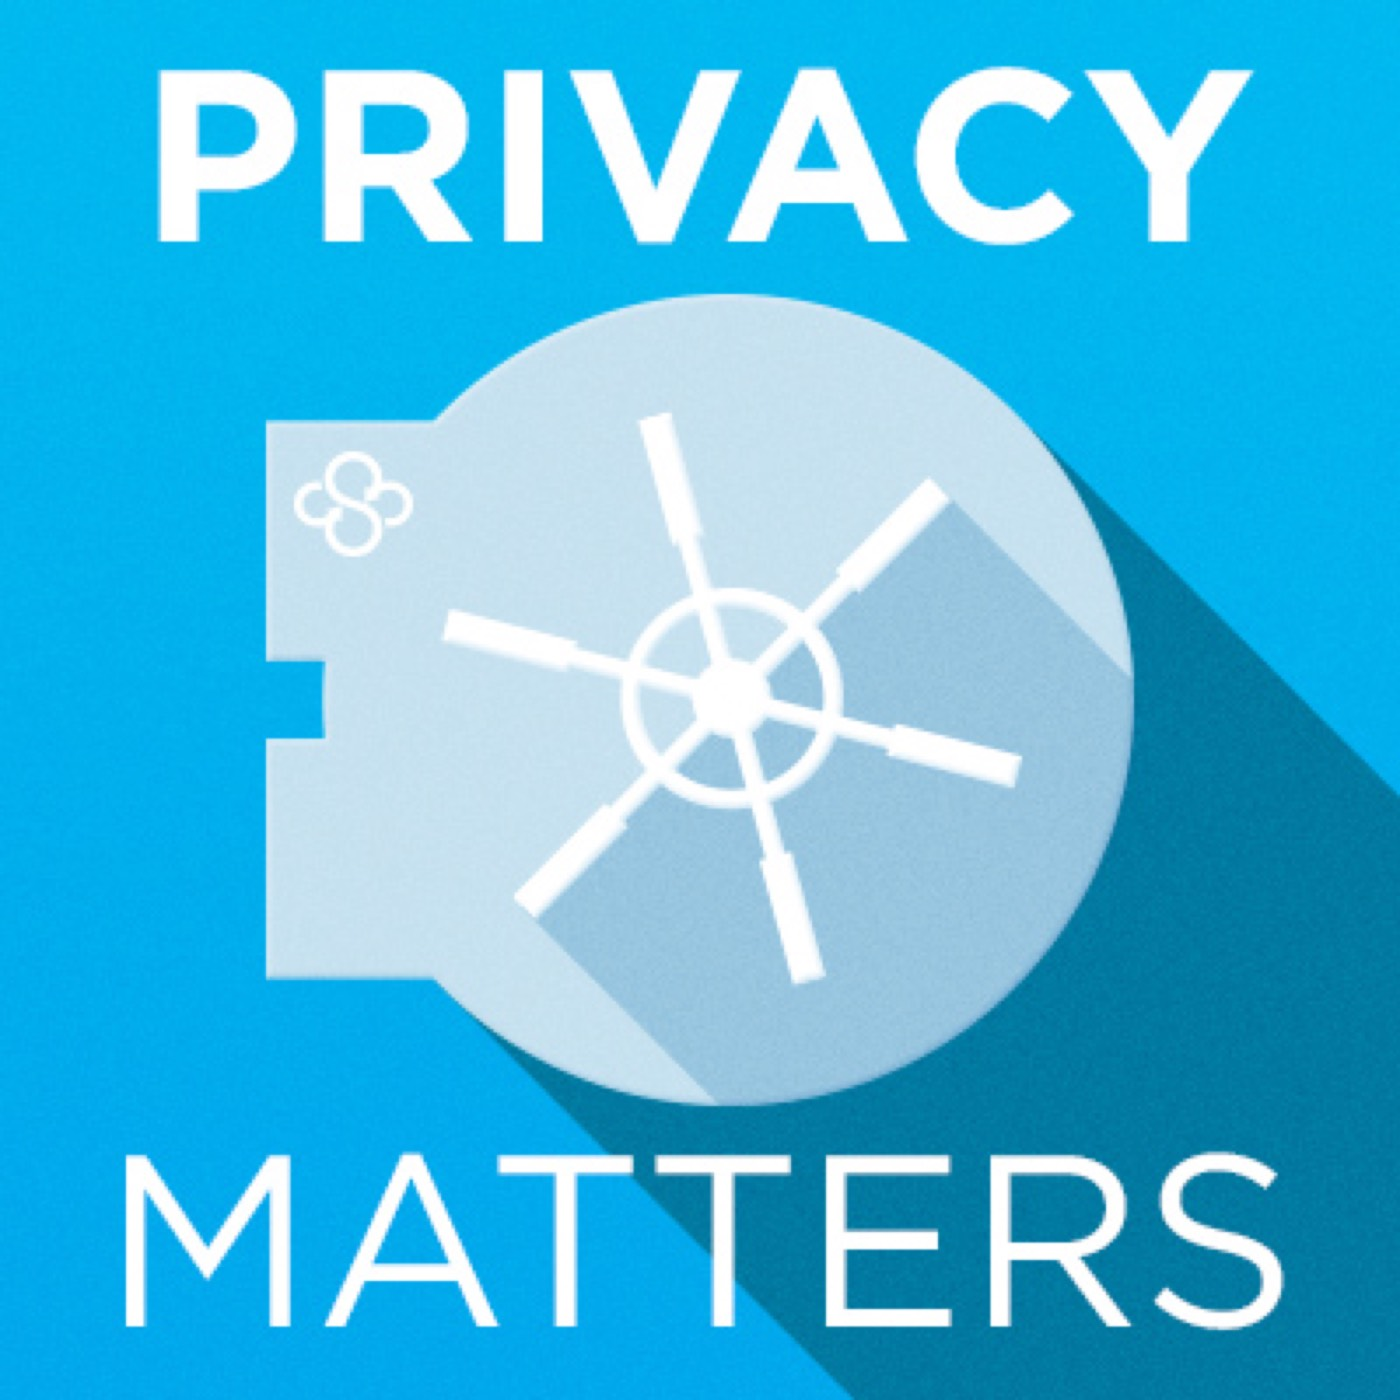 (2015/01/13) Why privacy matters (NSA Spying)